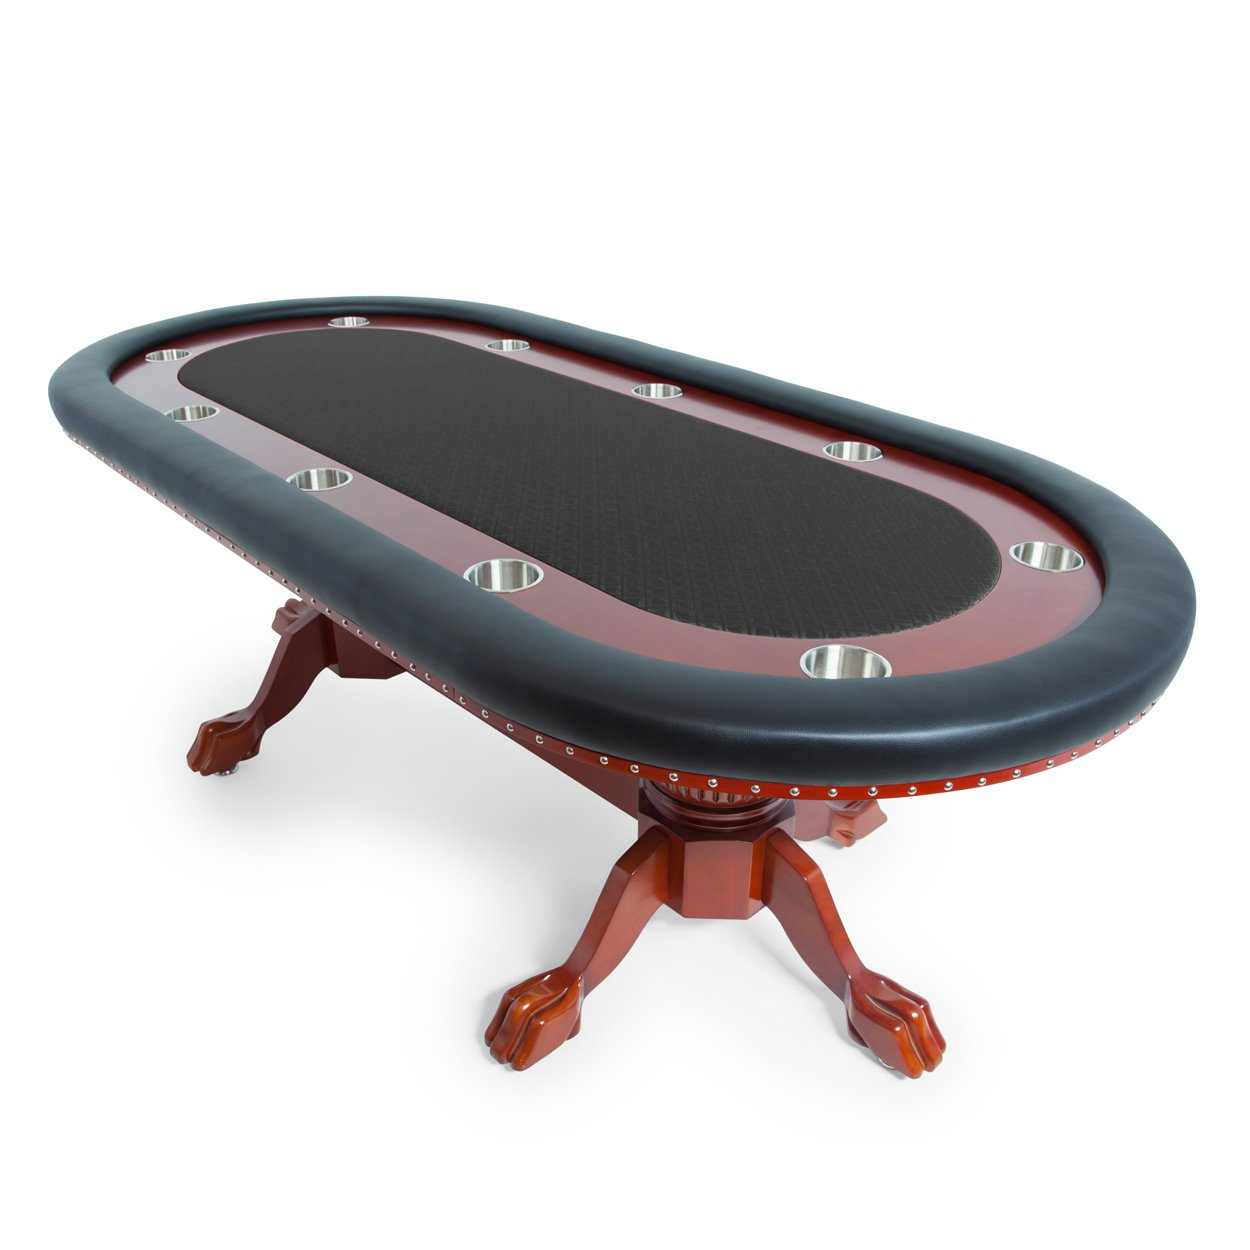 BBO Poker Rockwell Poker Table for 10 Players with Black Speed Cloth Playing Surface, 94 x 44-Inch Oval